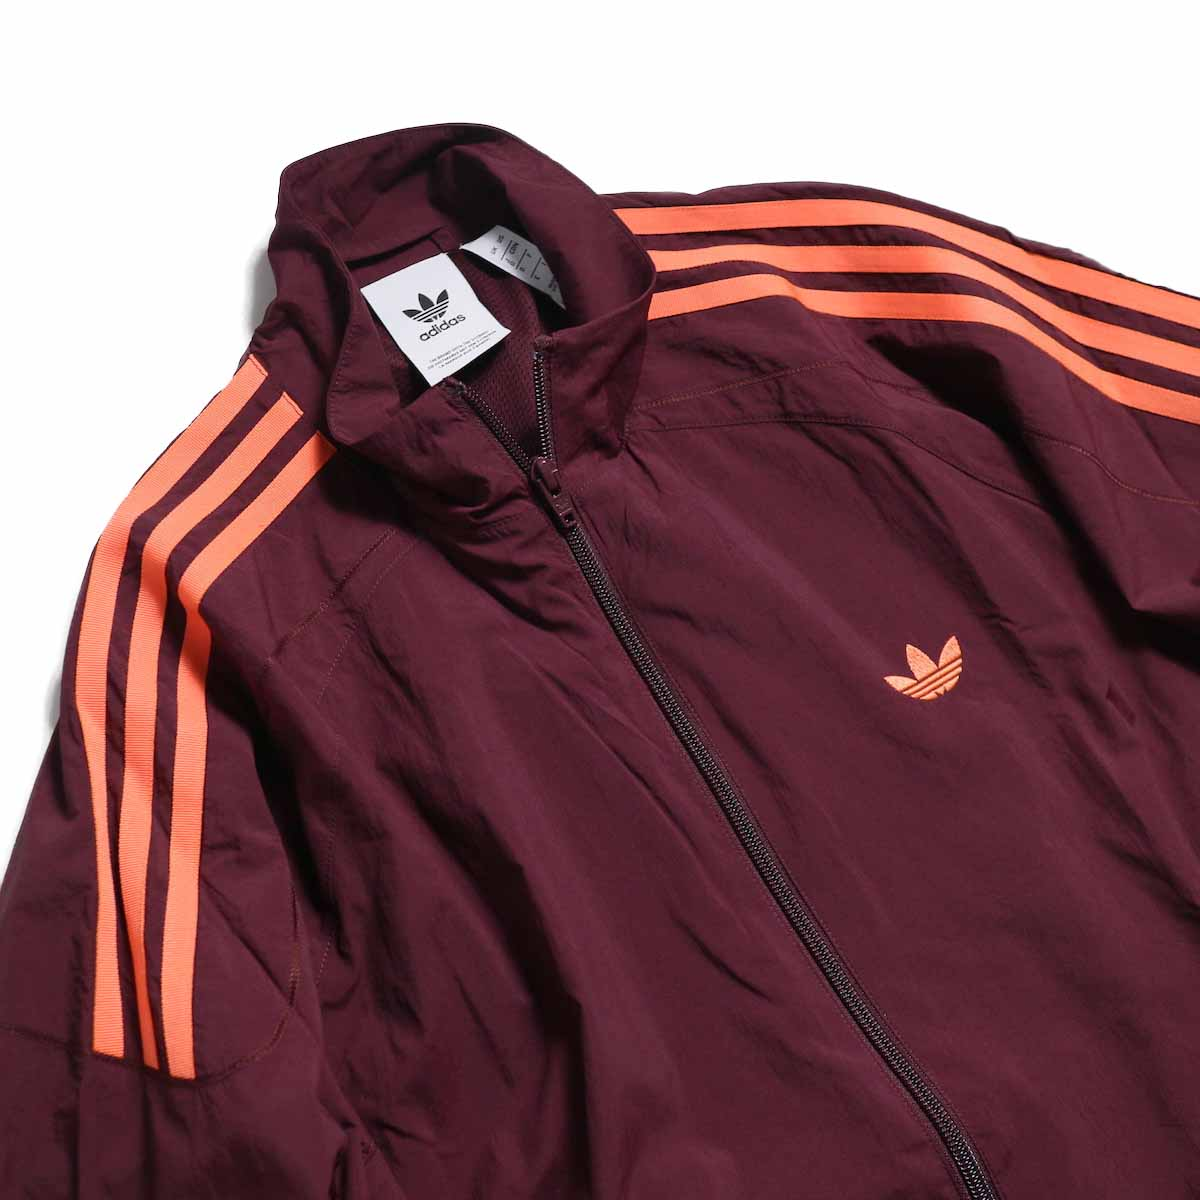 adidas originals / Flamestrike Woven Track Top -Maroon 首元